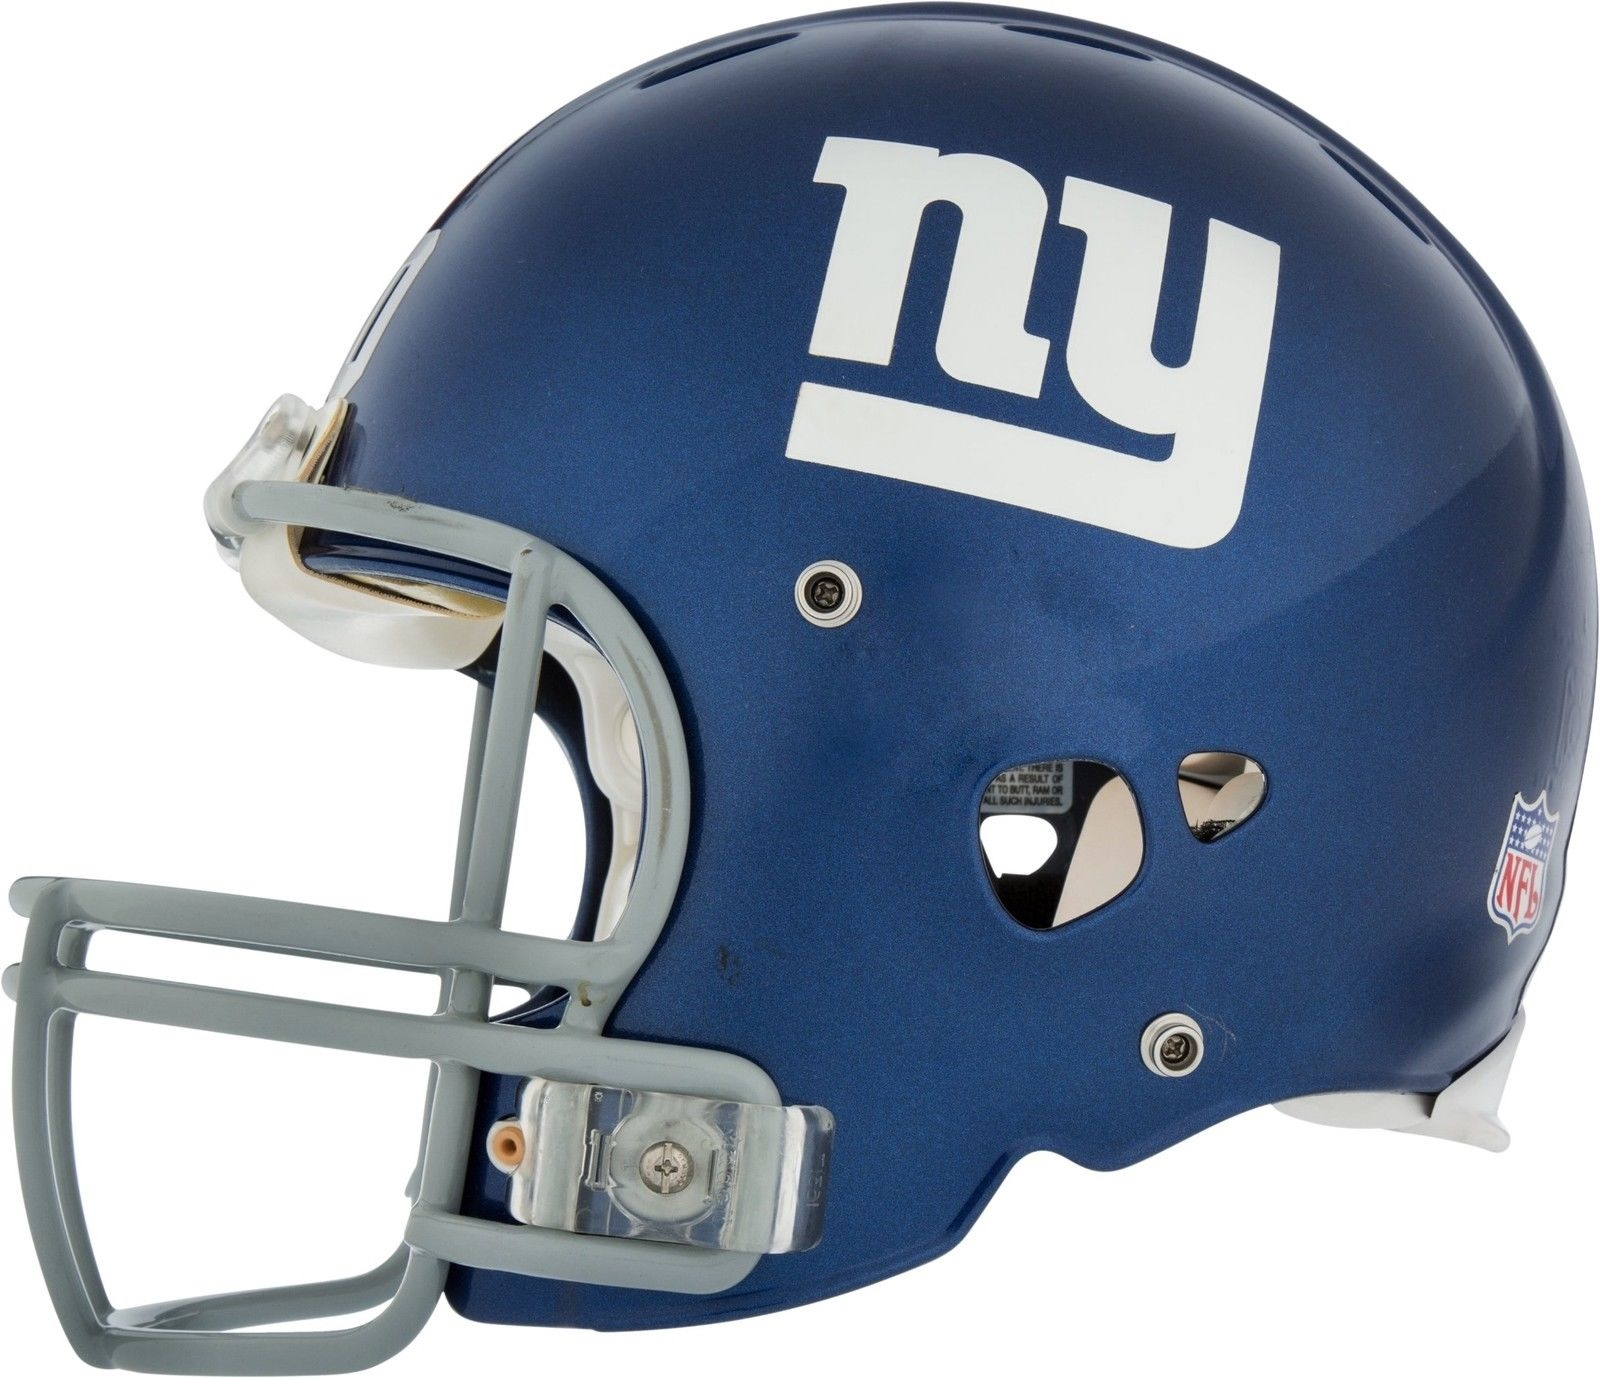 Eli Manning Signed Game Used New York Giants Helmet With Photo Match ... 426c7f579